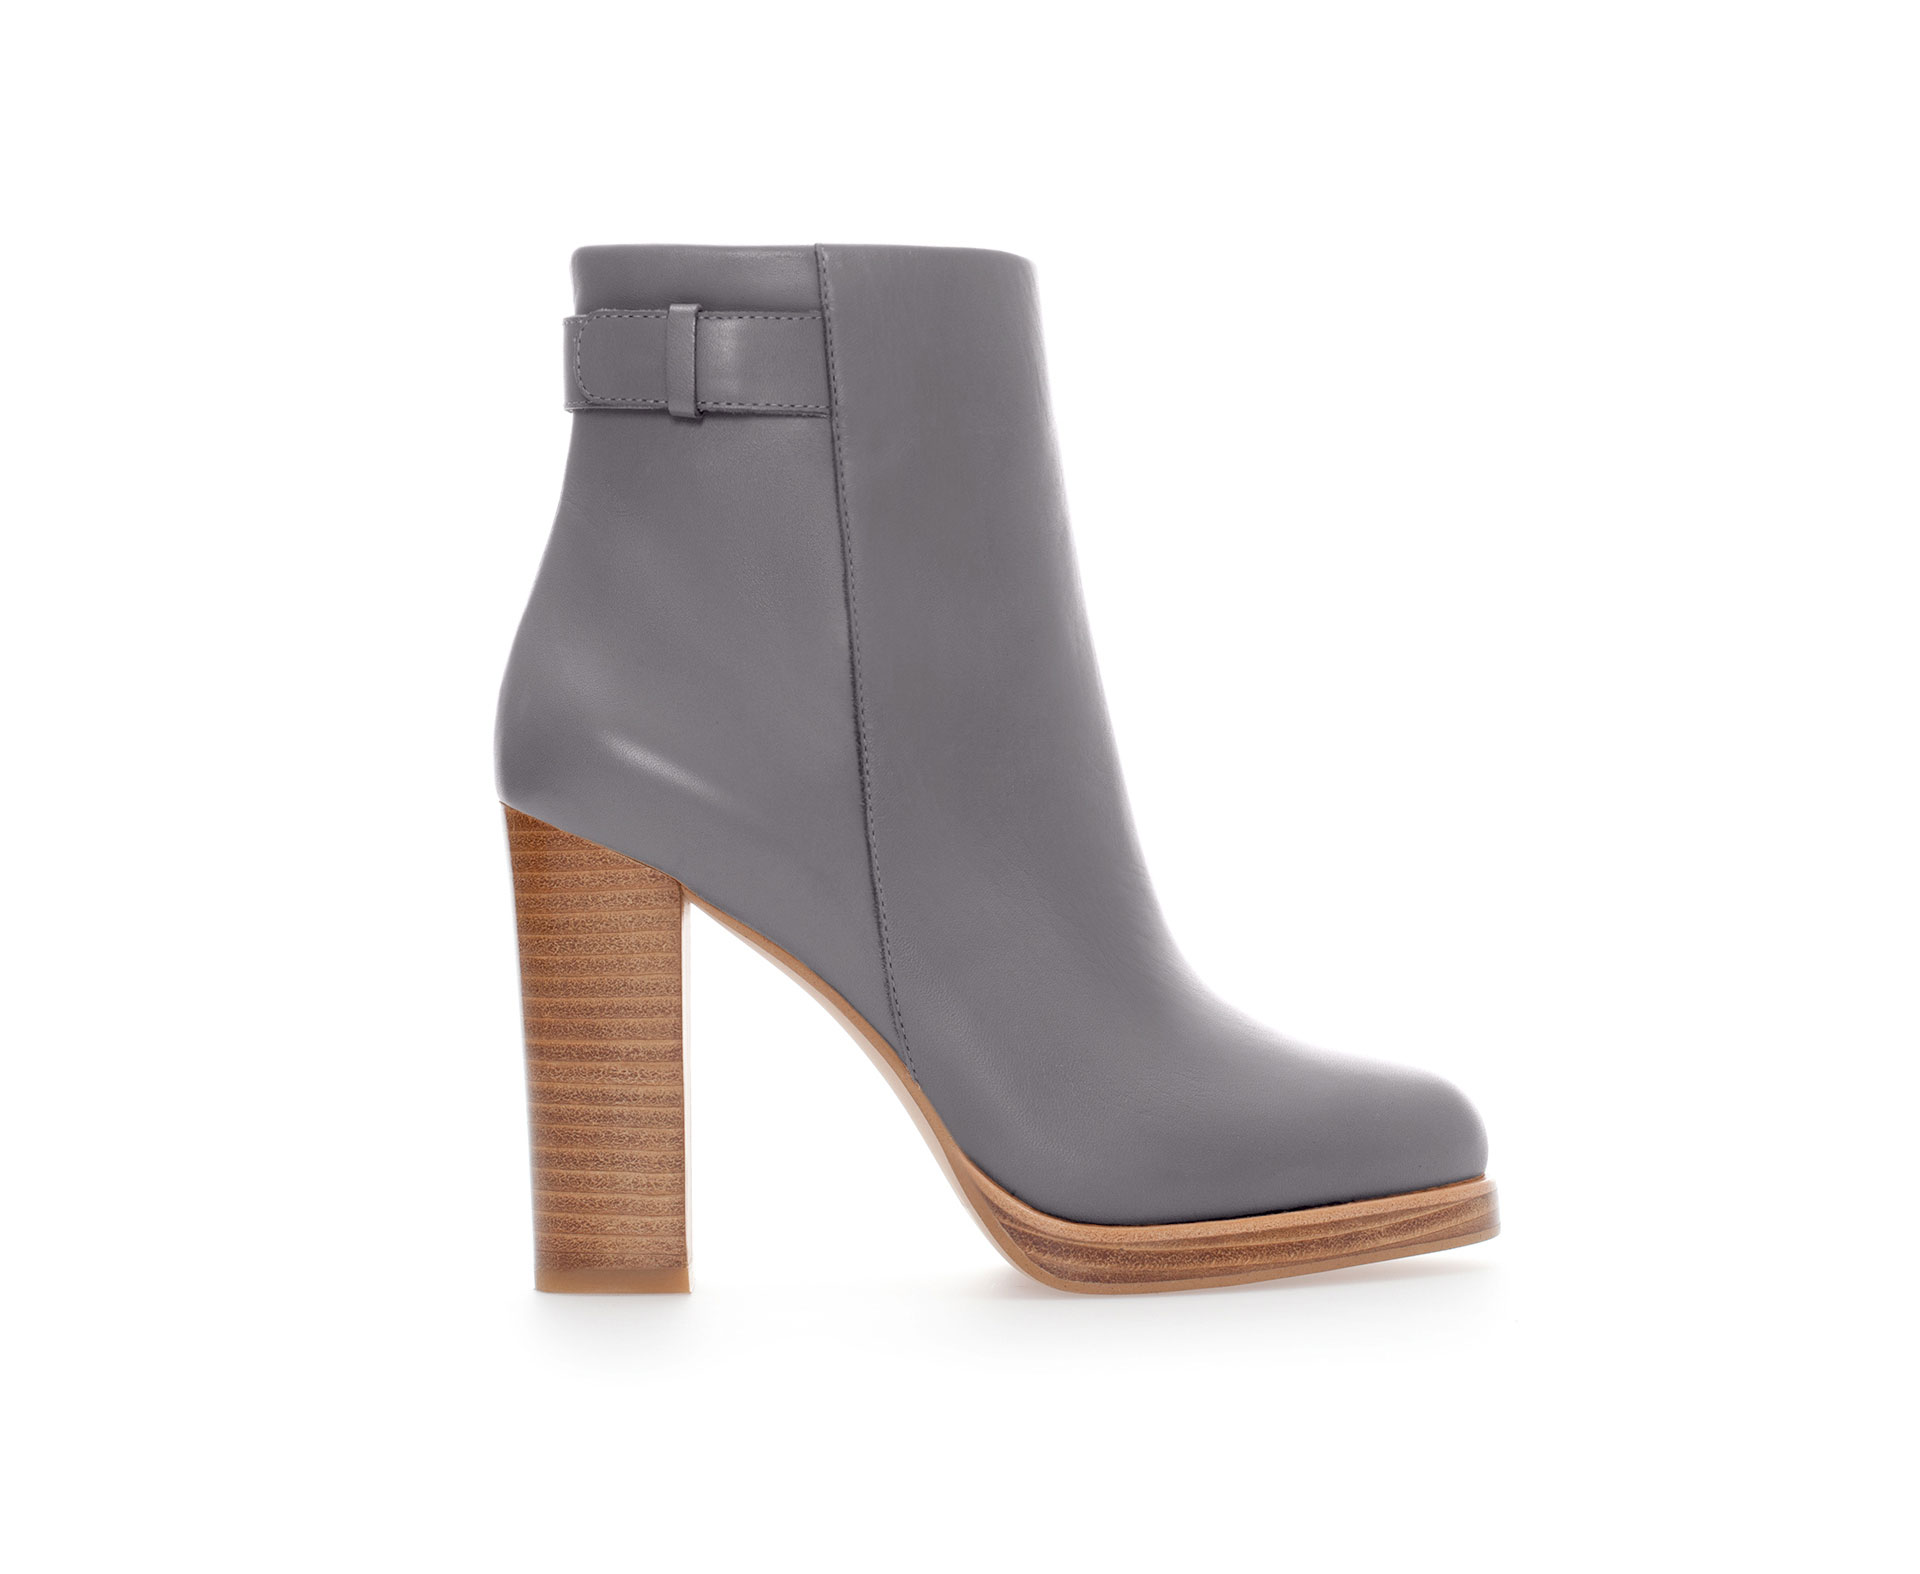 Zara Leather Ankle Boot with Strap in Gray | Lyst